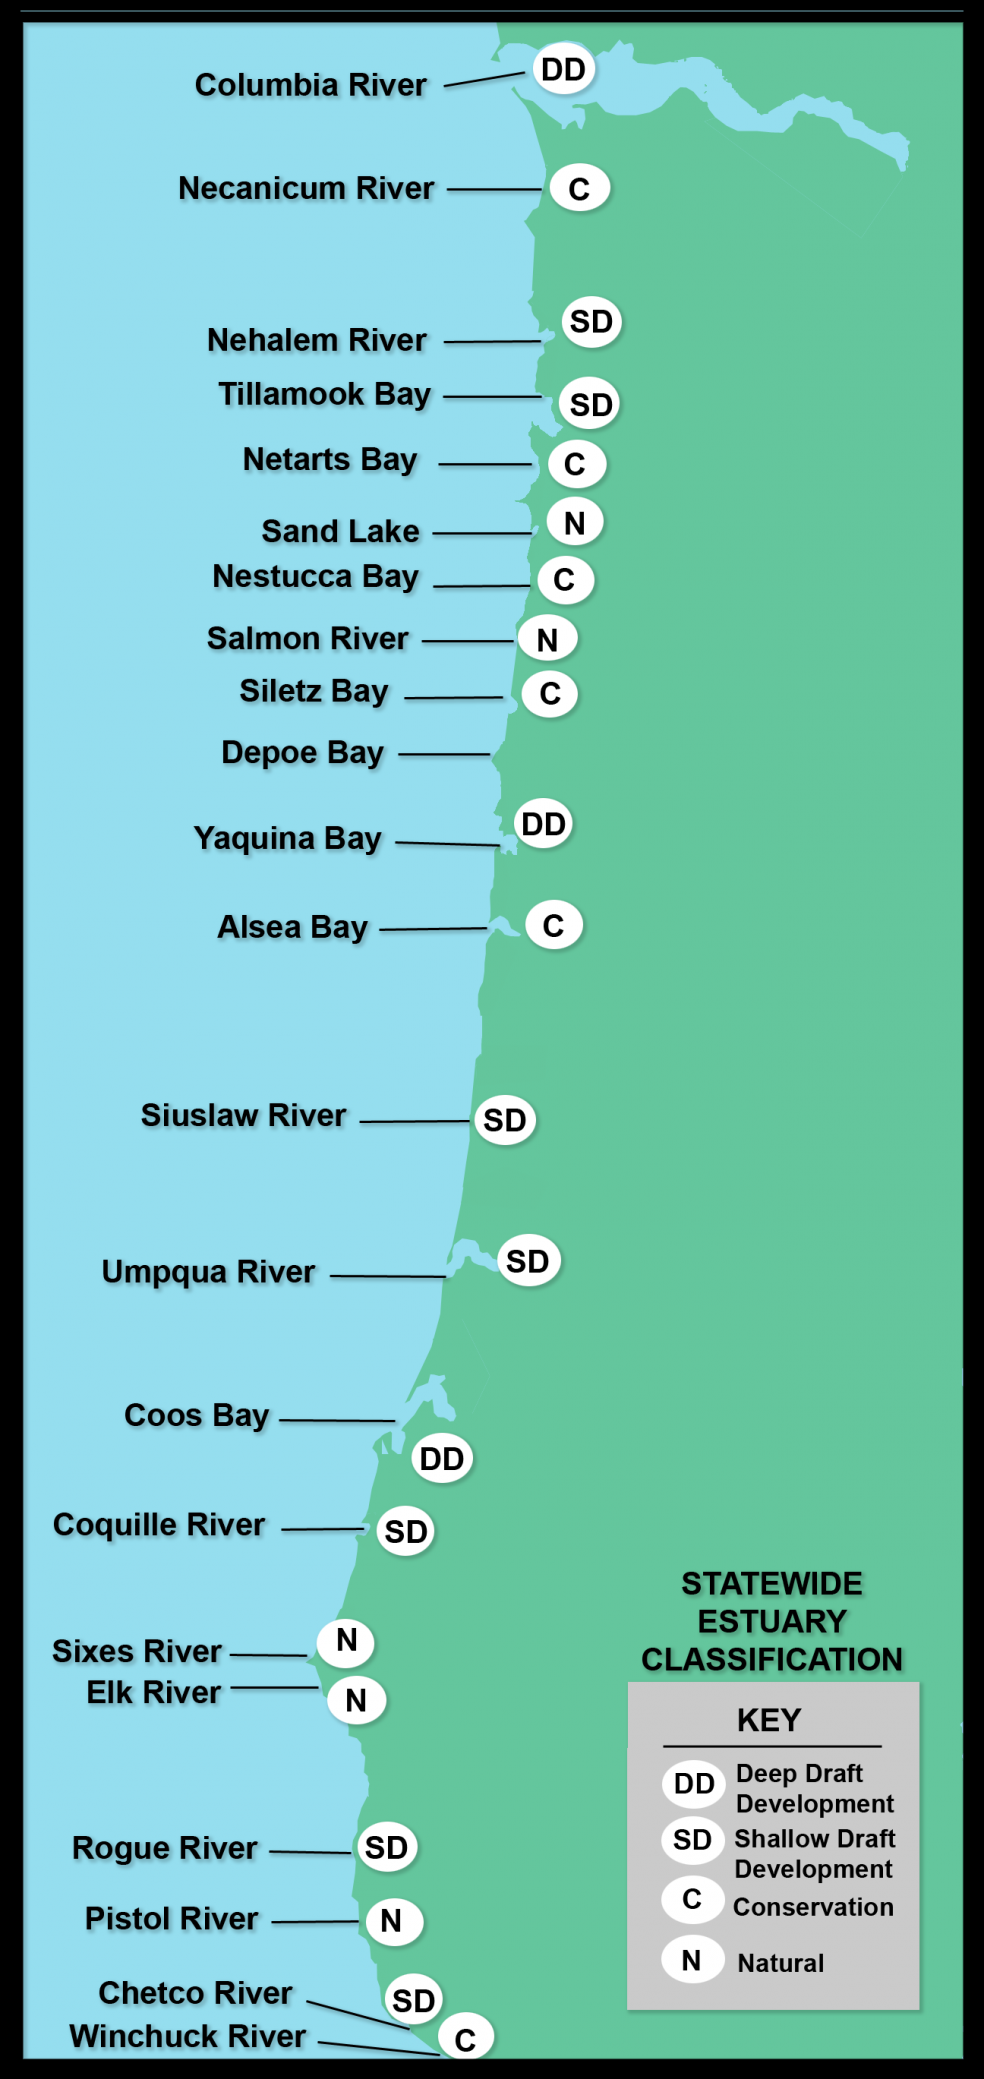 Oregon's 22 major estuaries are classified into four levels for development and planning purposes